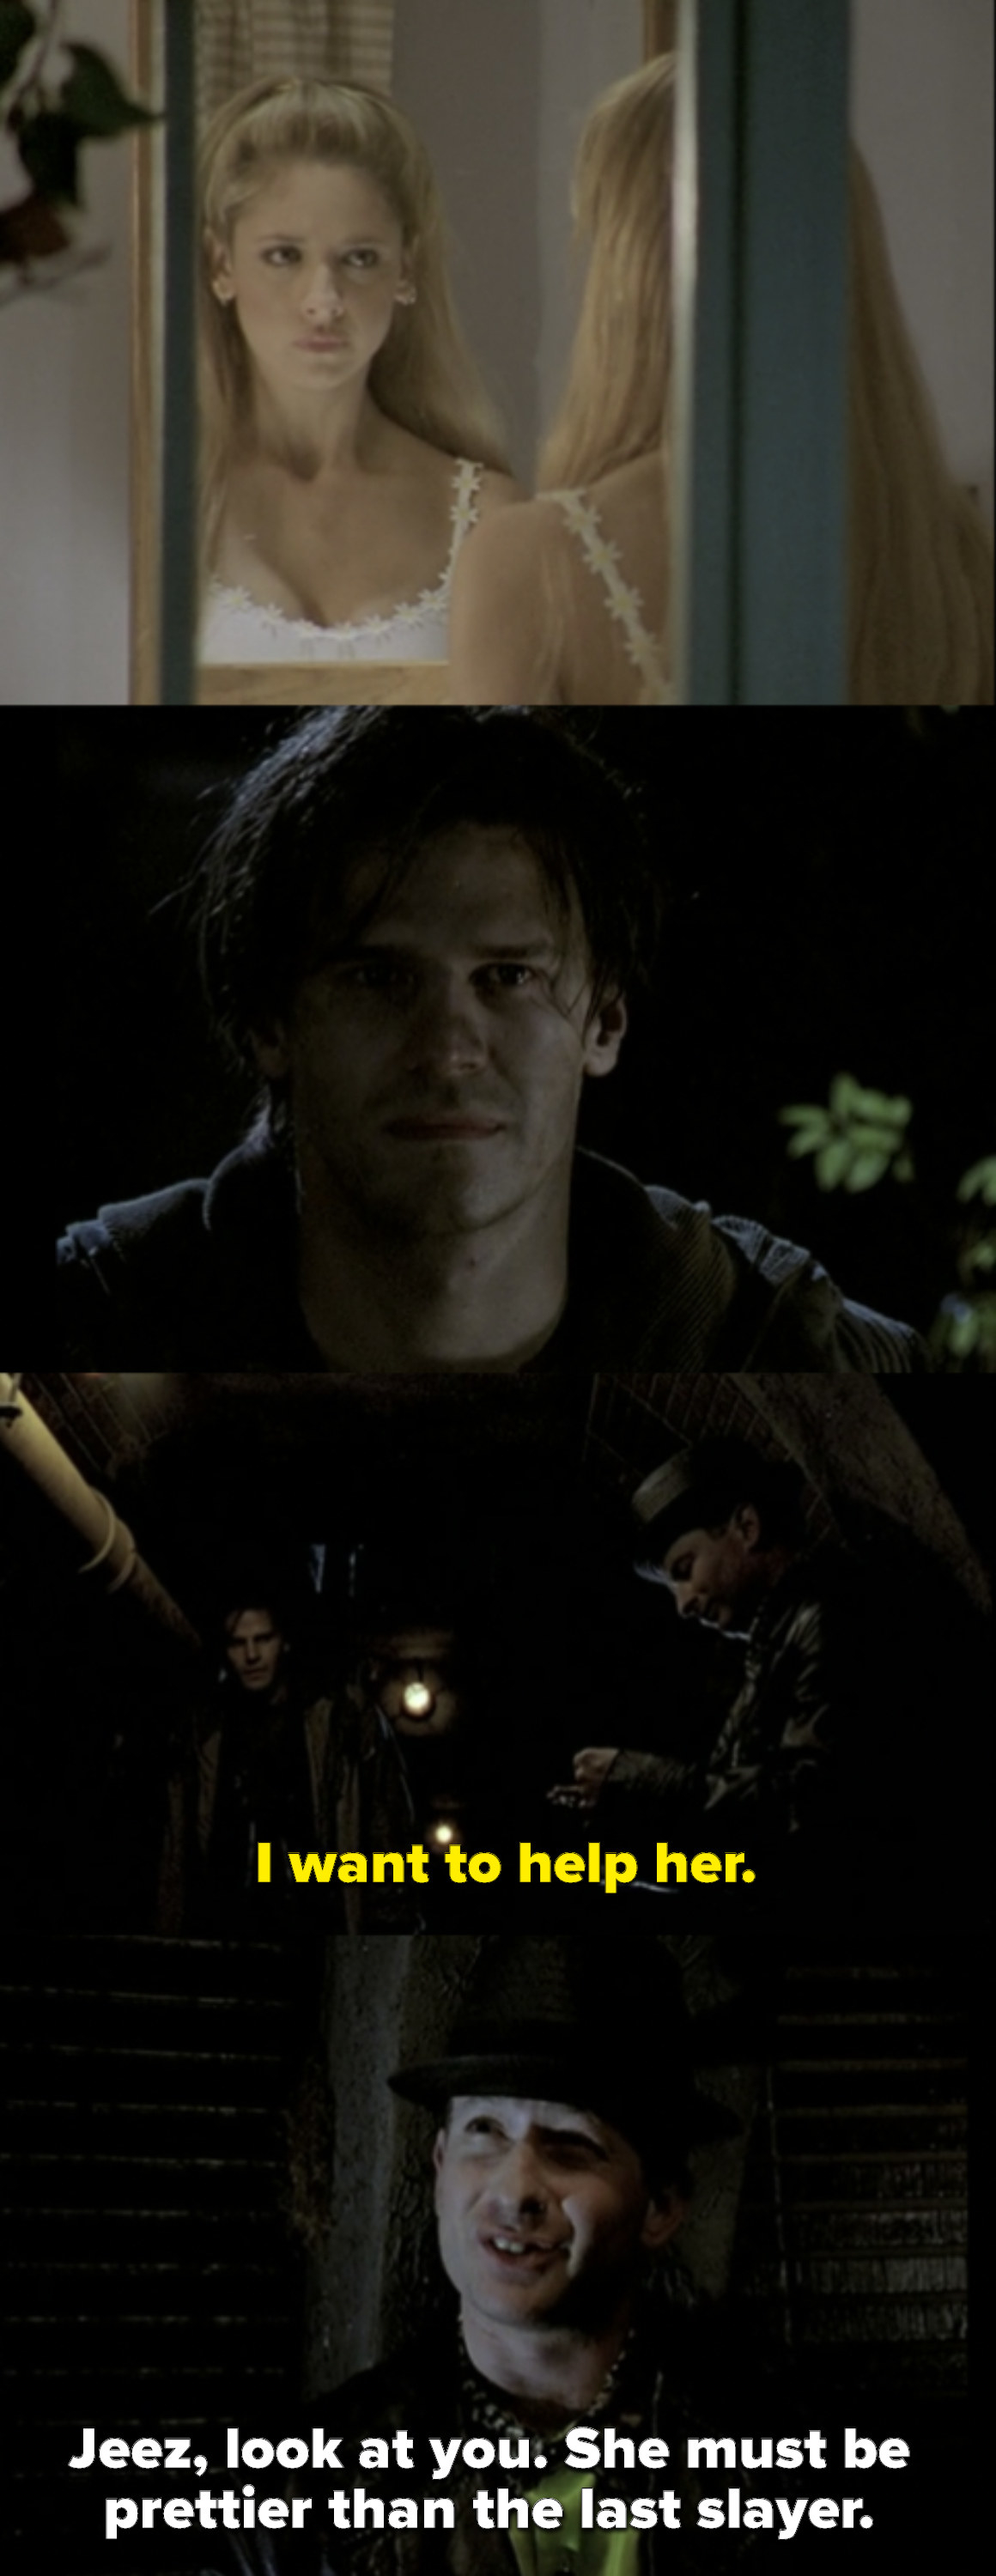 Angel sees Buffy crying through the window, then tells the demon giving him advice that he wants to help her. He replies that the Slayer must be prettier than the last